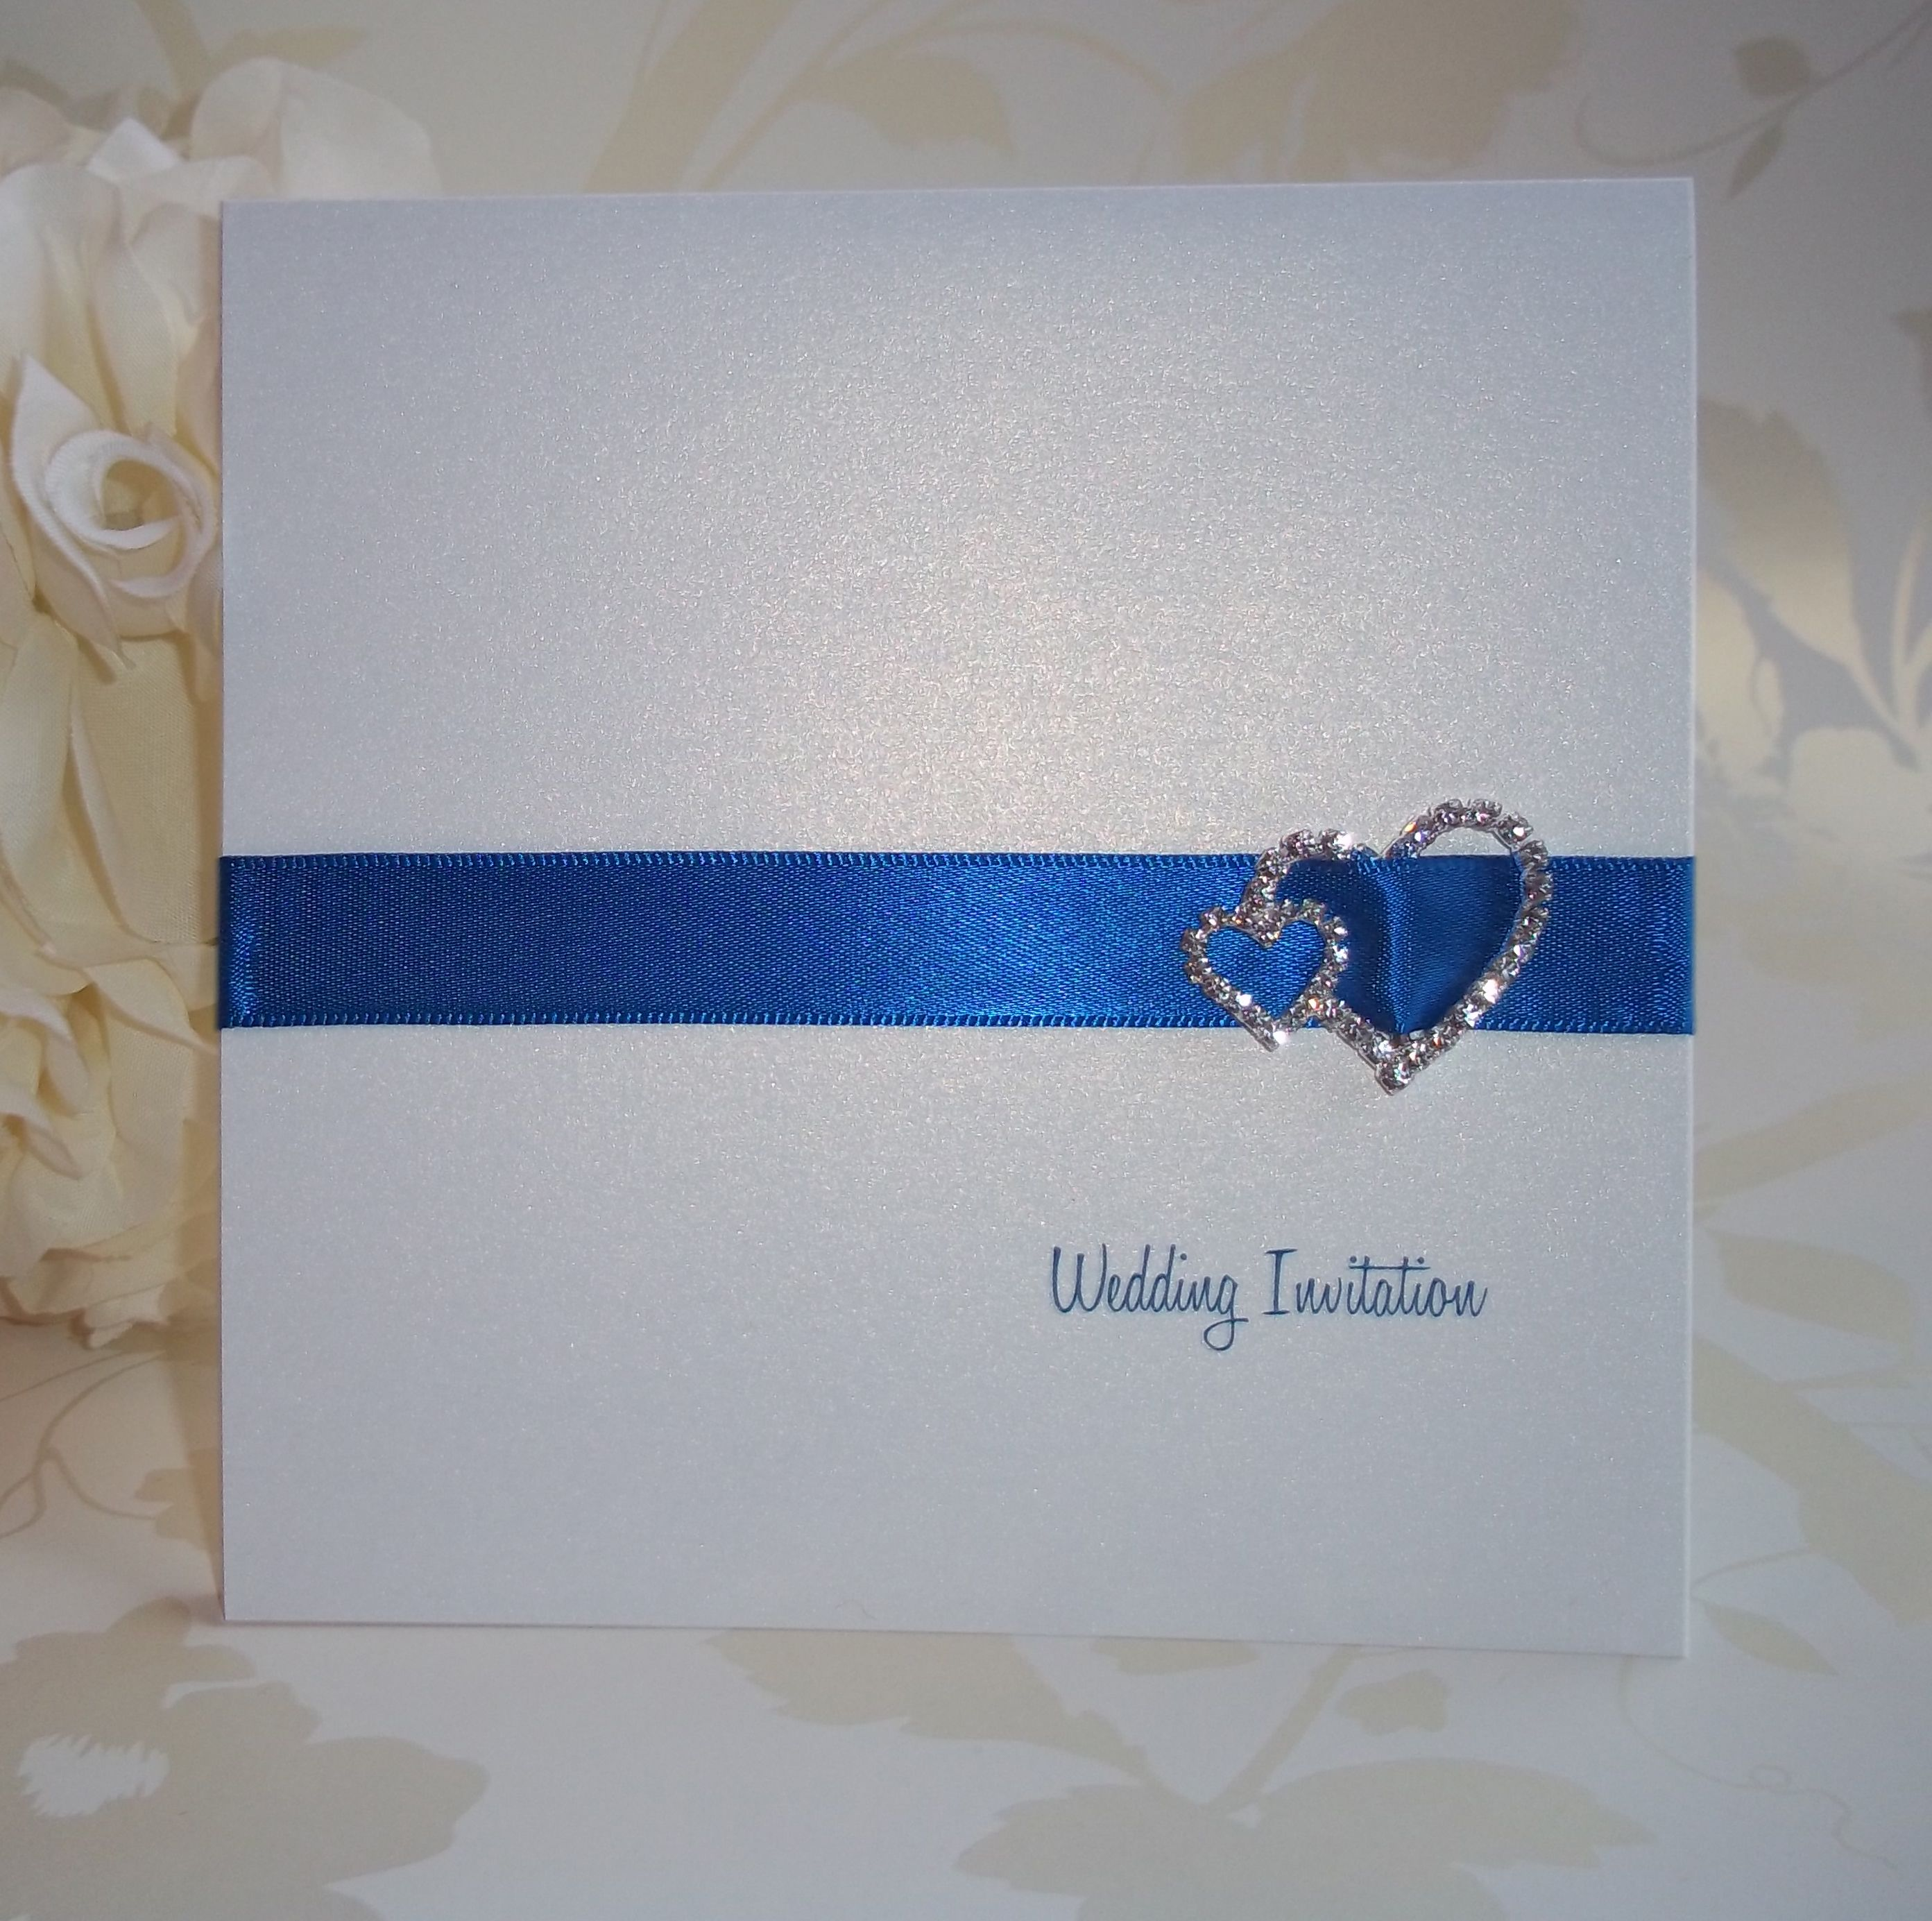 Elegance Wedding Invitation: Royal Blue Ribbon with Double Heart ...